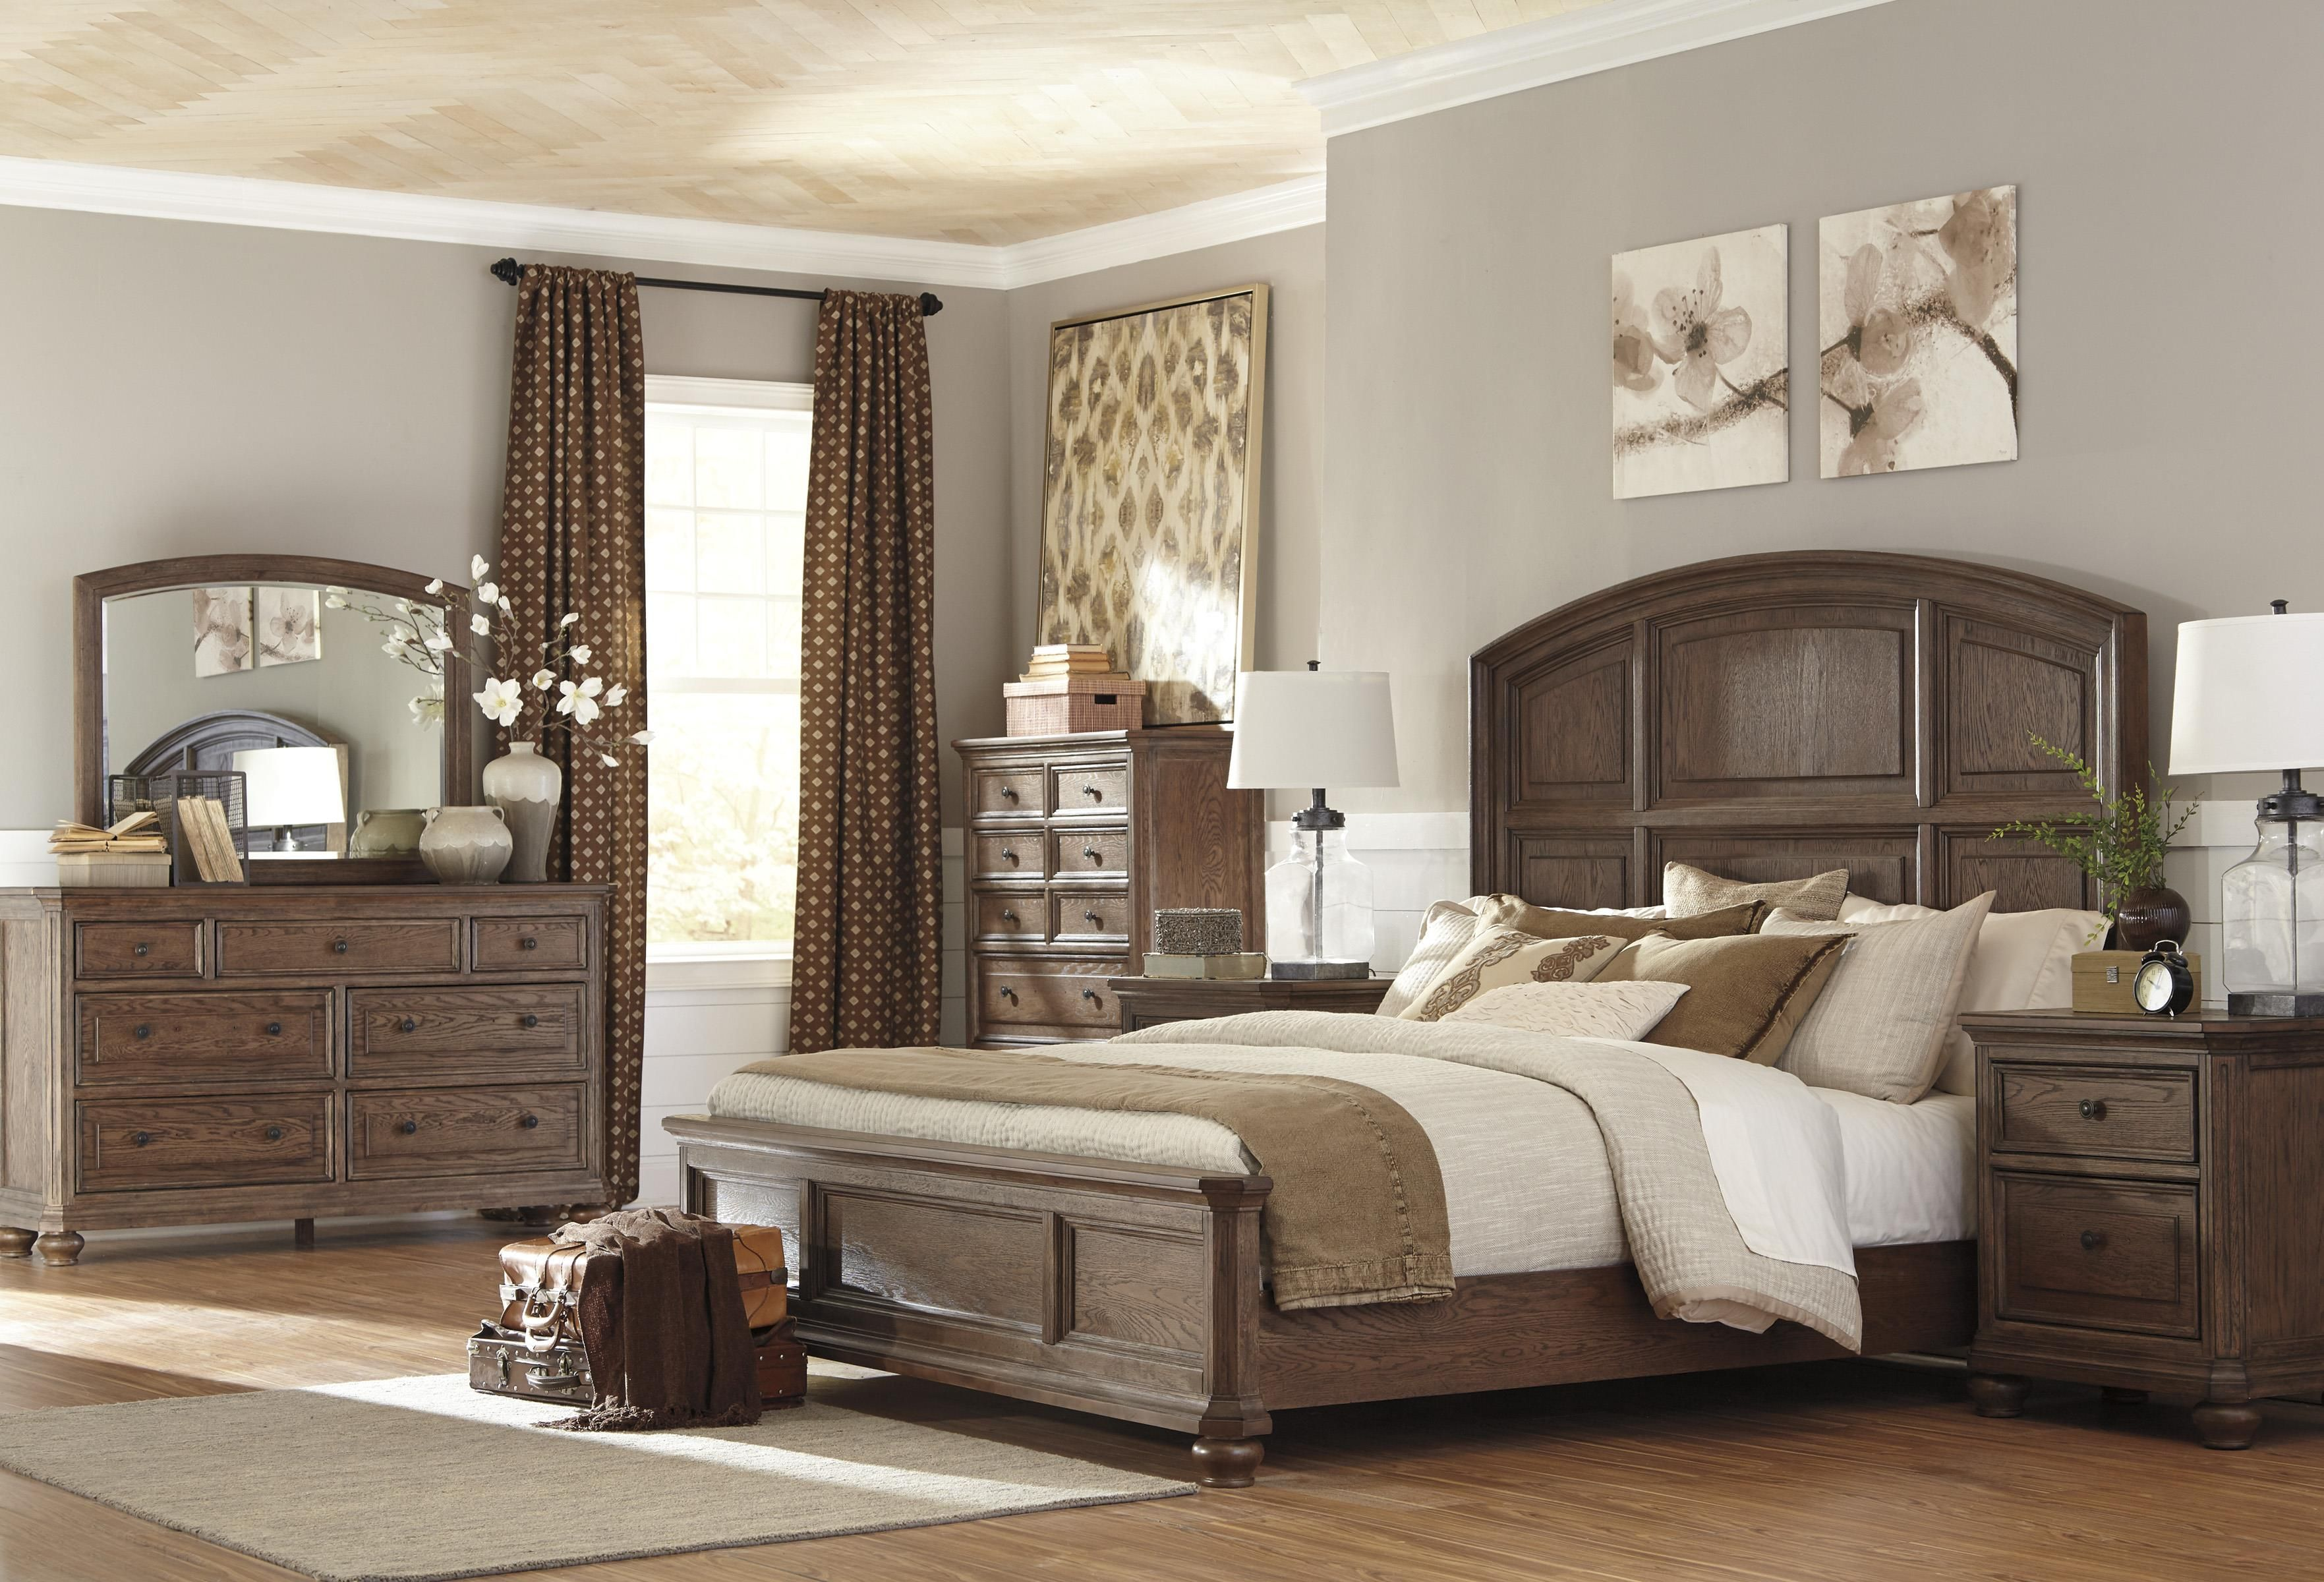 Maeleen Queen Bedroom Group by Signature Design by Ashley